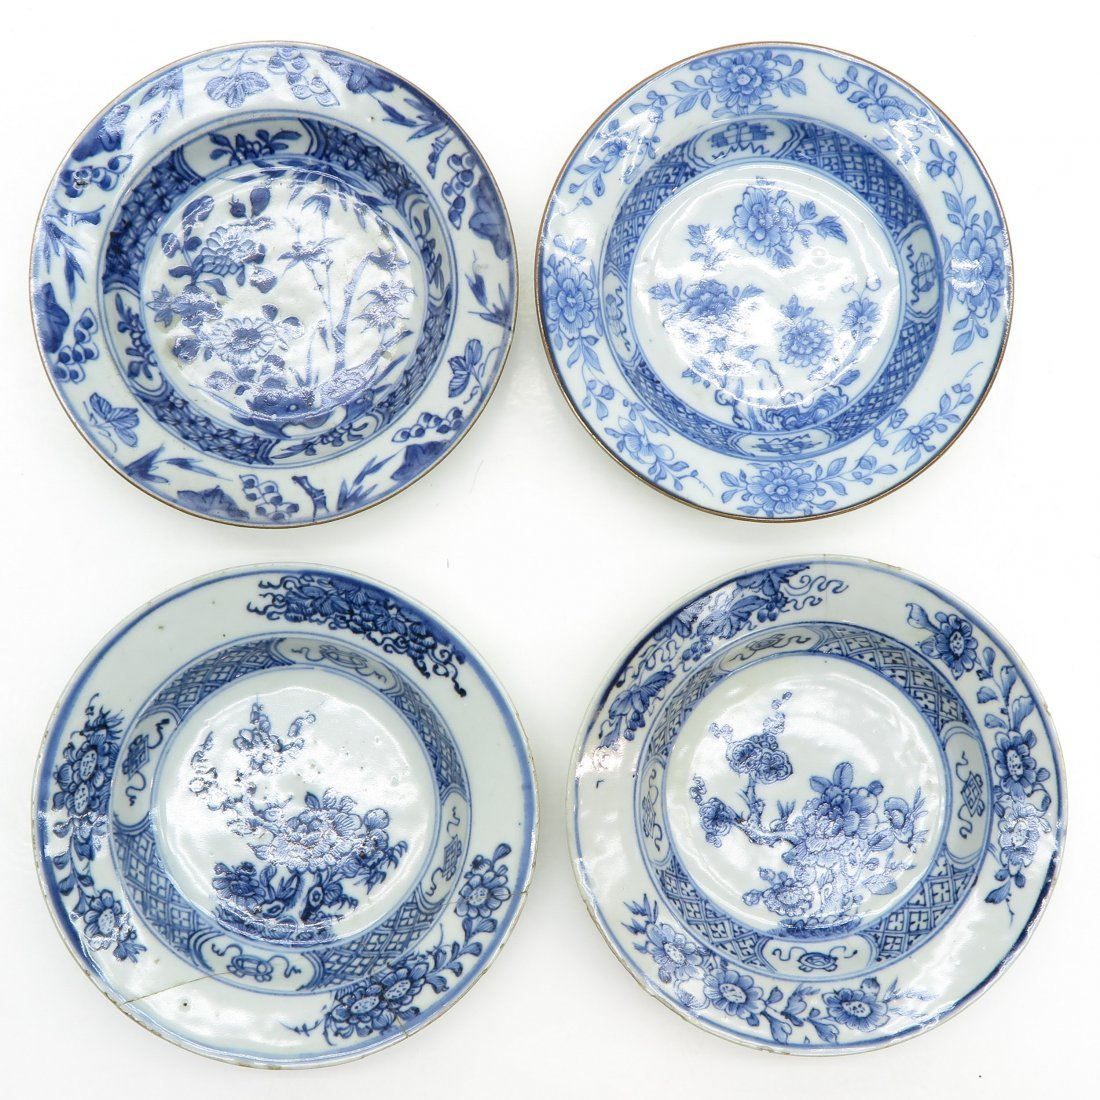 Lot of China Porcelain Plates